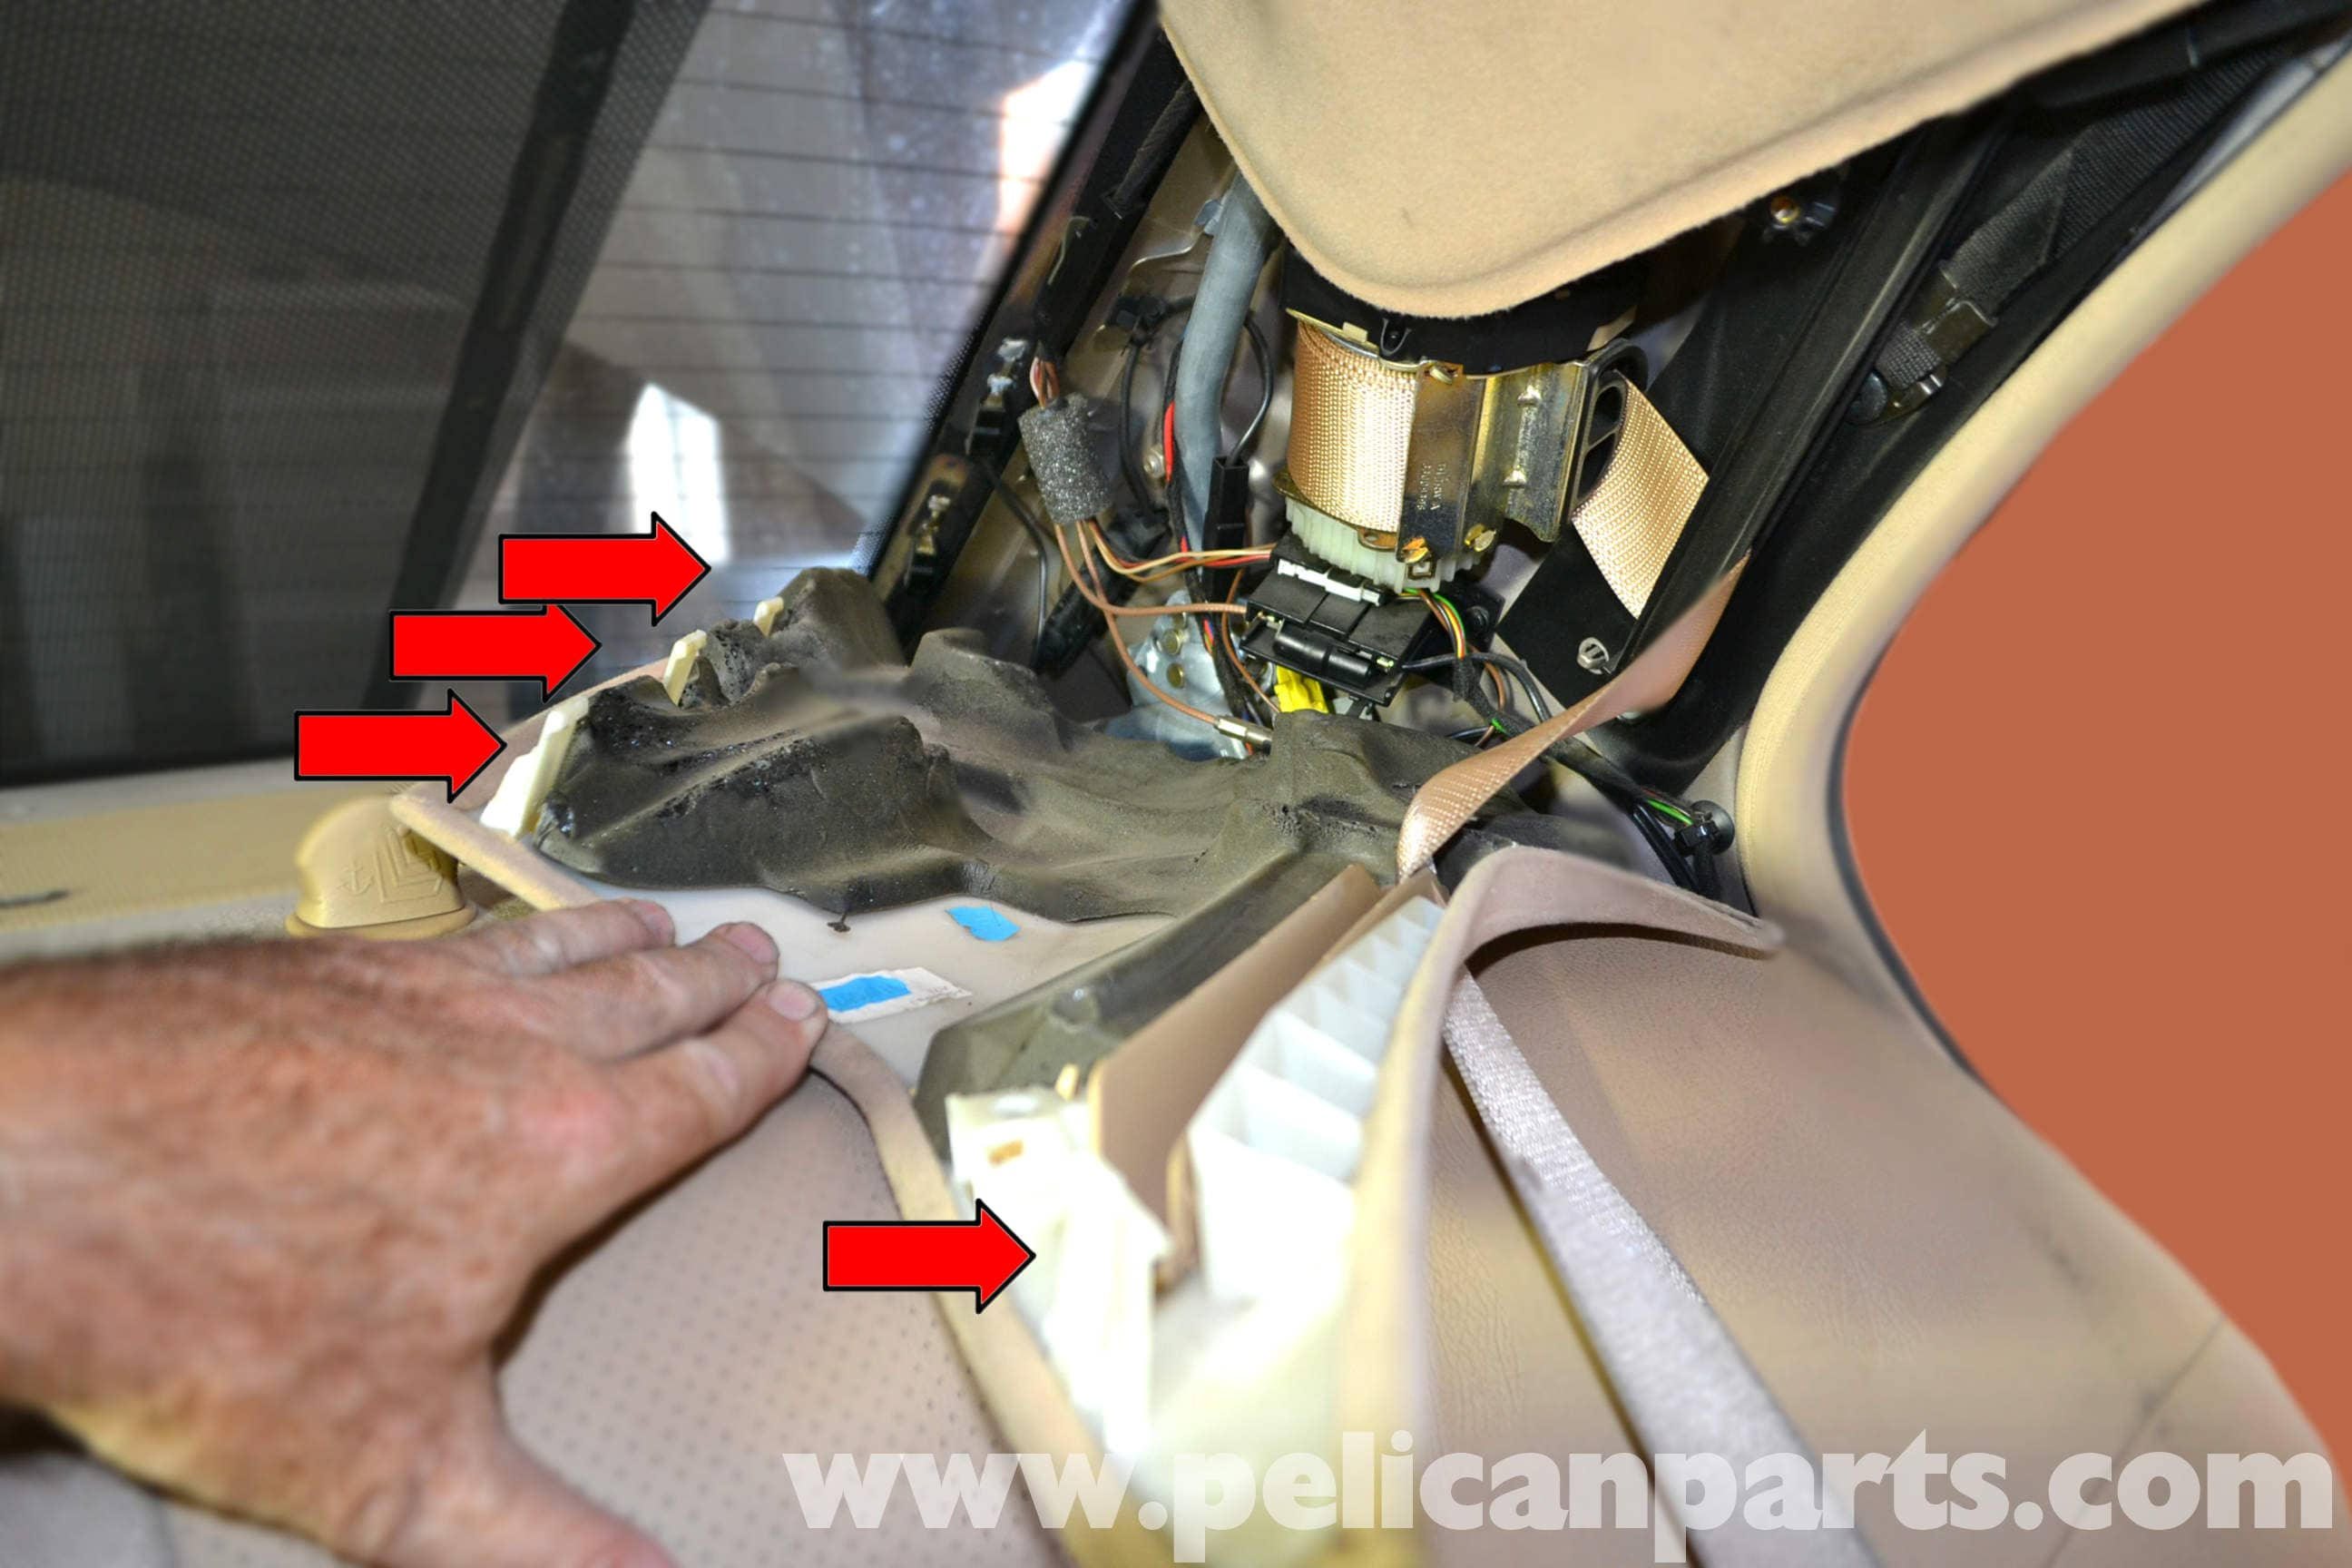 Mercedes Benz W203 Interior Pillar Panel Replacement